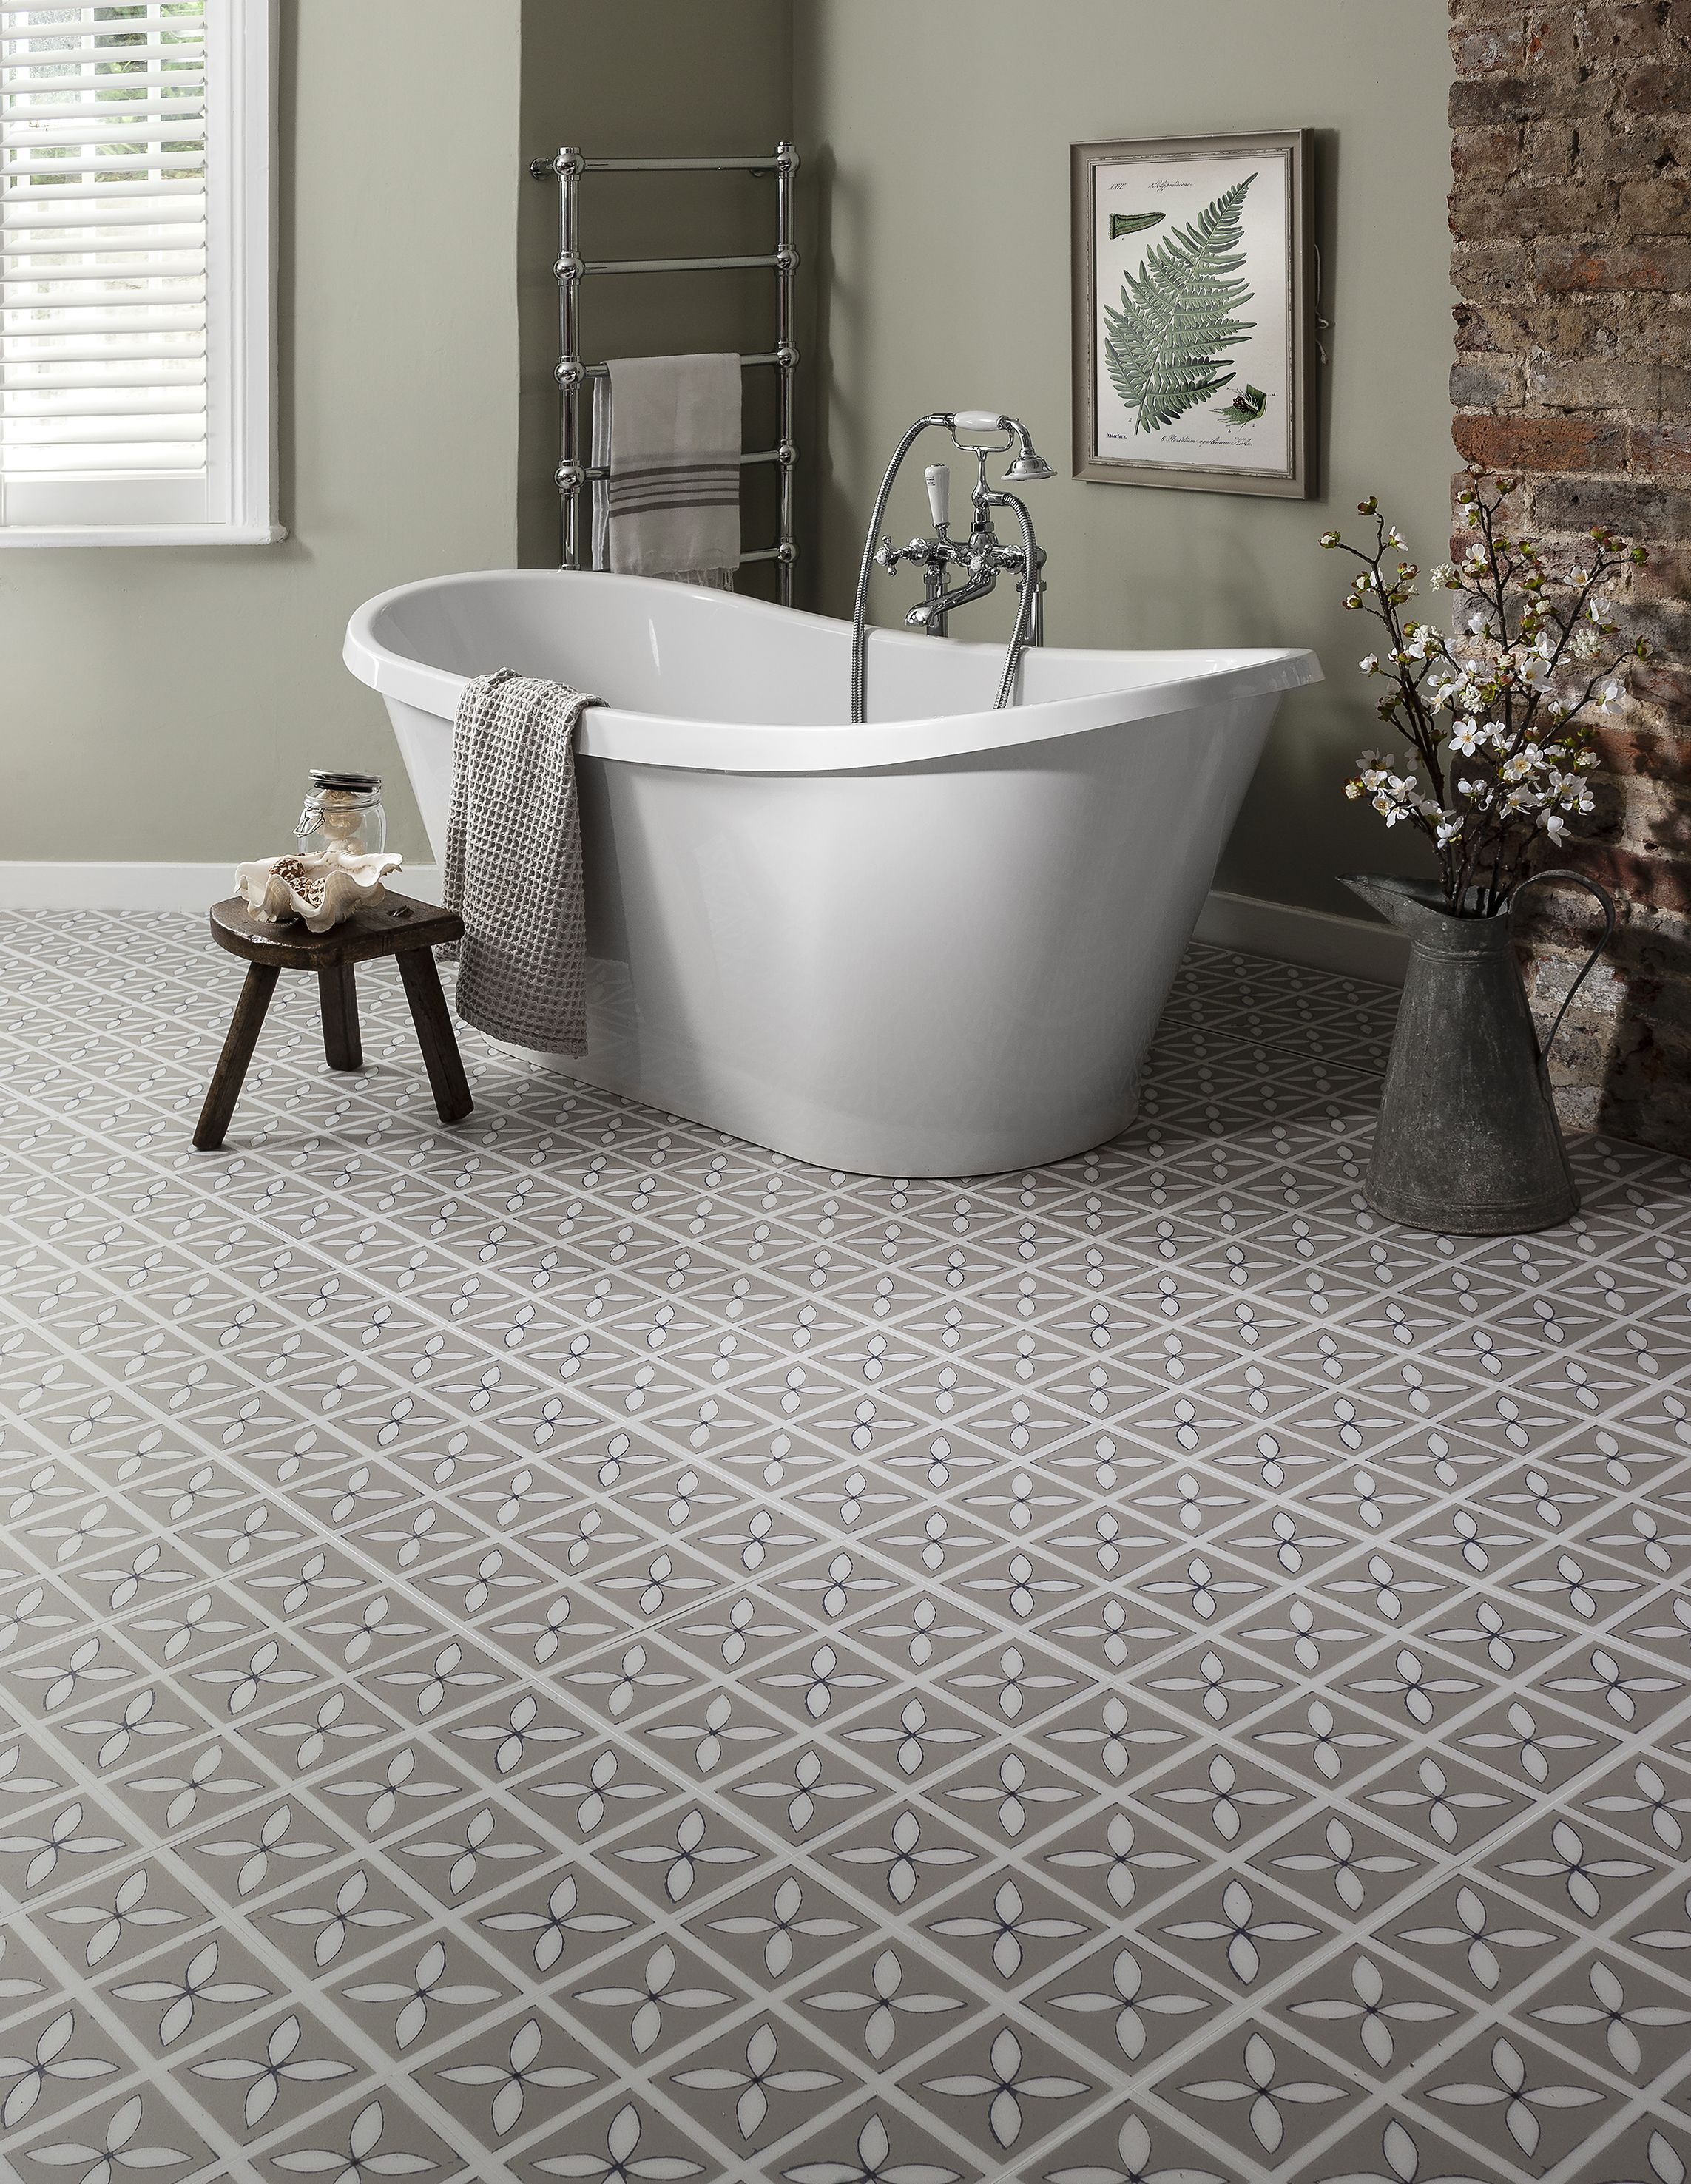 Bathroom floor vinyl tiles - Our Dee Hardwicke Lattice Vinyl Tile In Pebble Grey Looks Great When Used Across A Whole